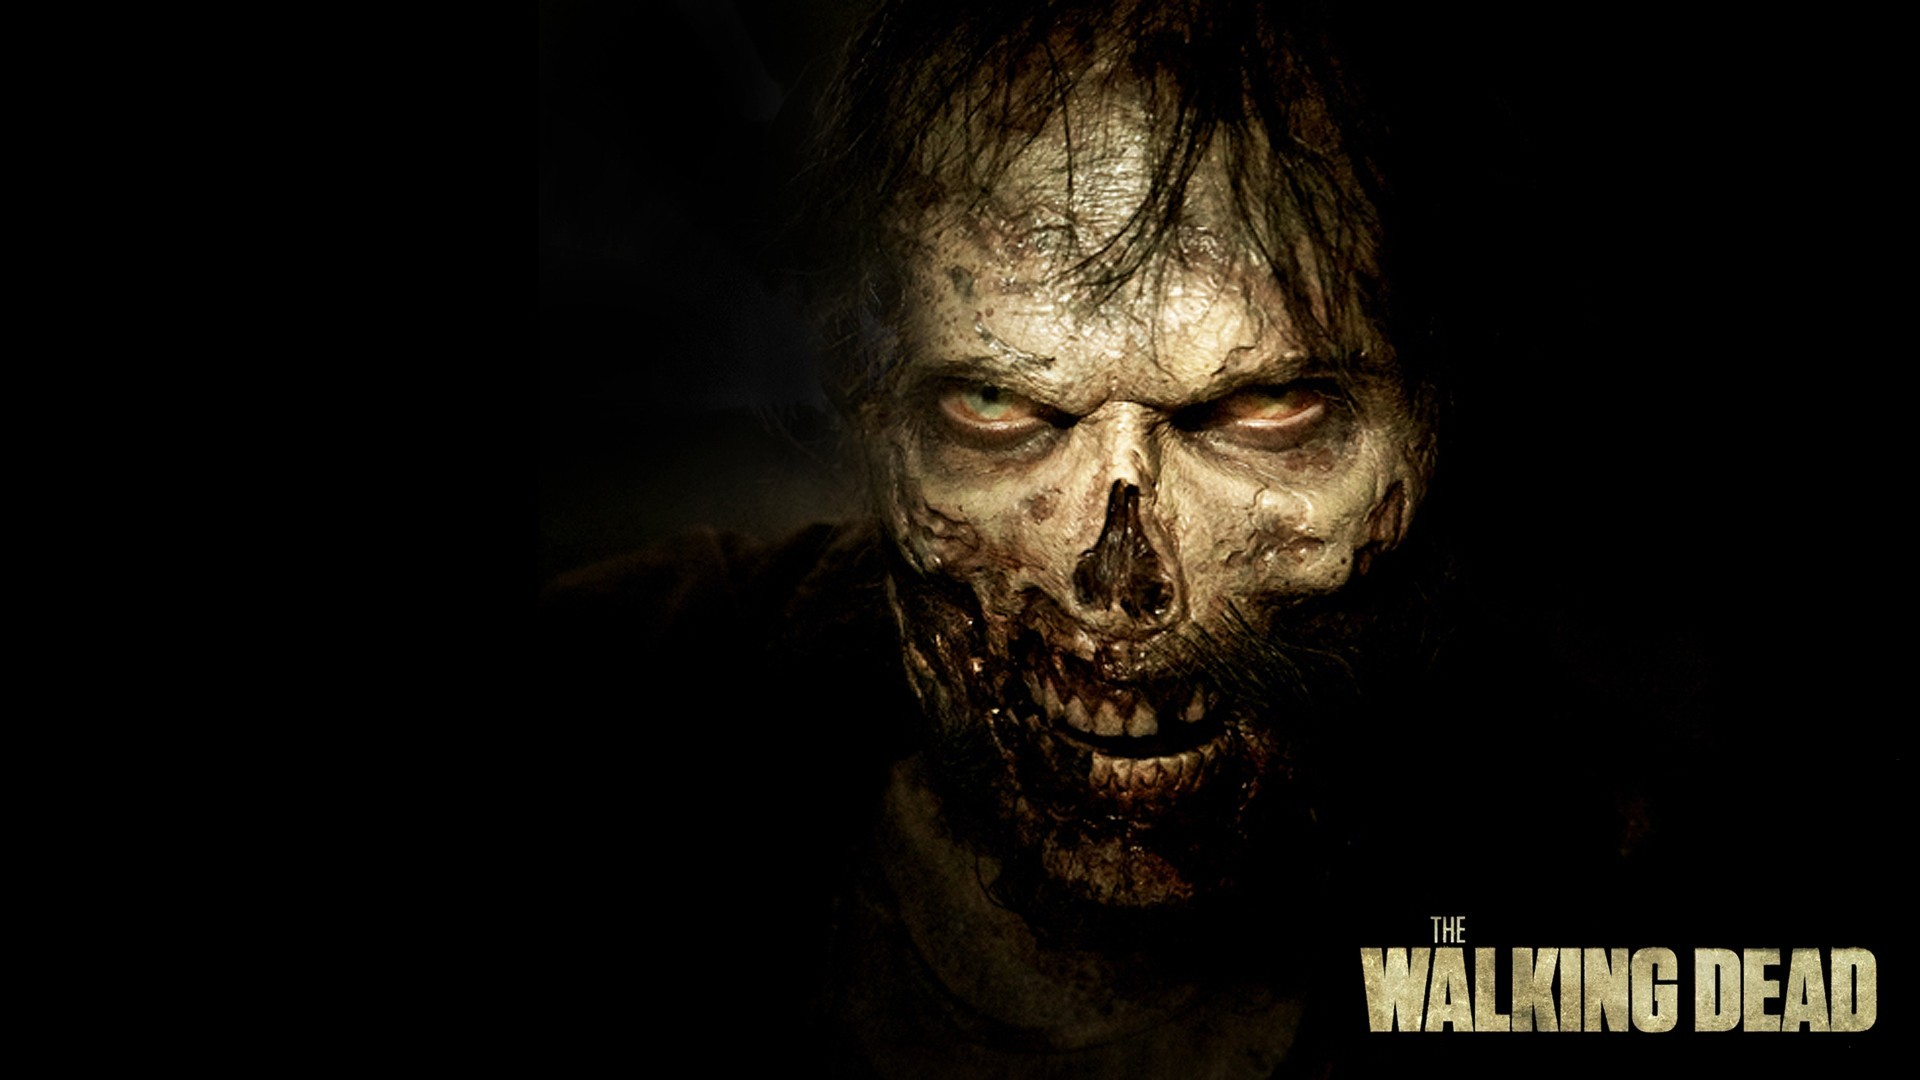 1920x1080 The Walking Dead (Season 5) - Them | Walking Dead Zombie Wallpaper in 1920